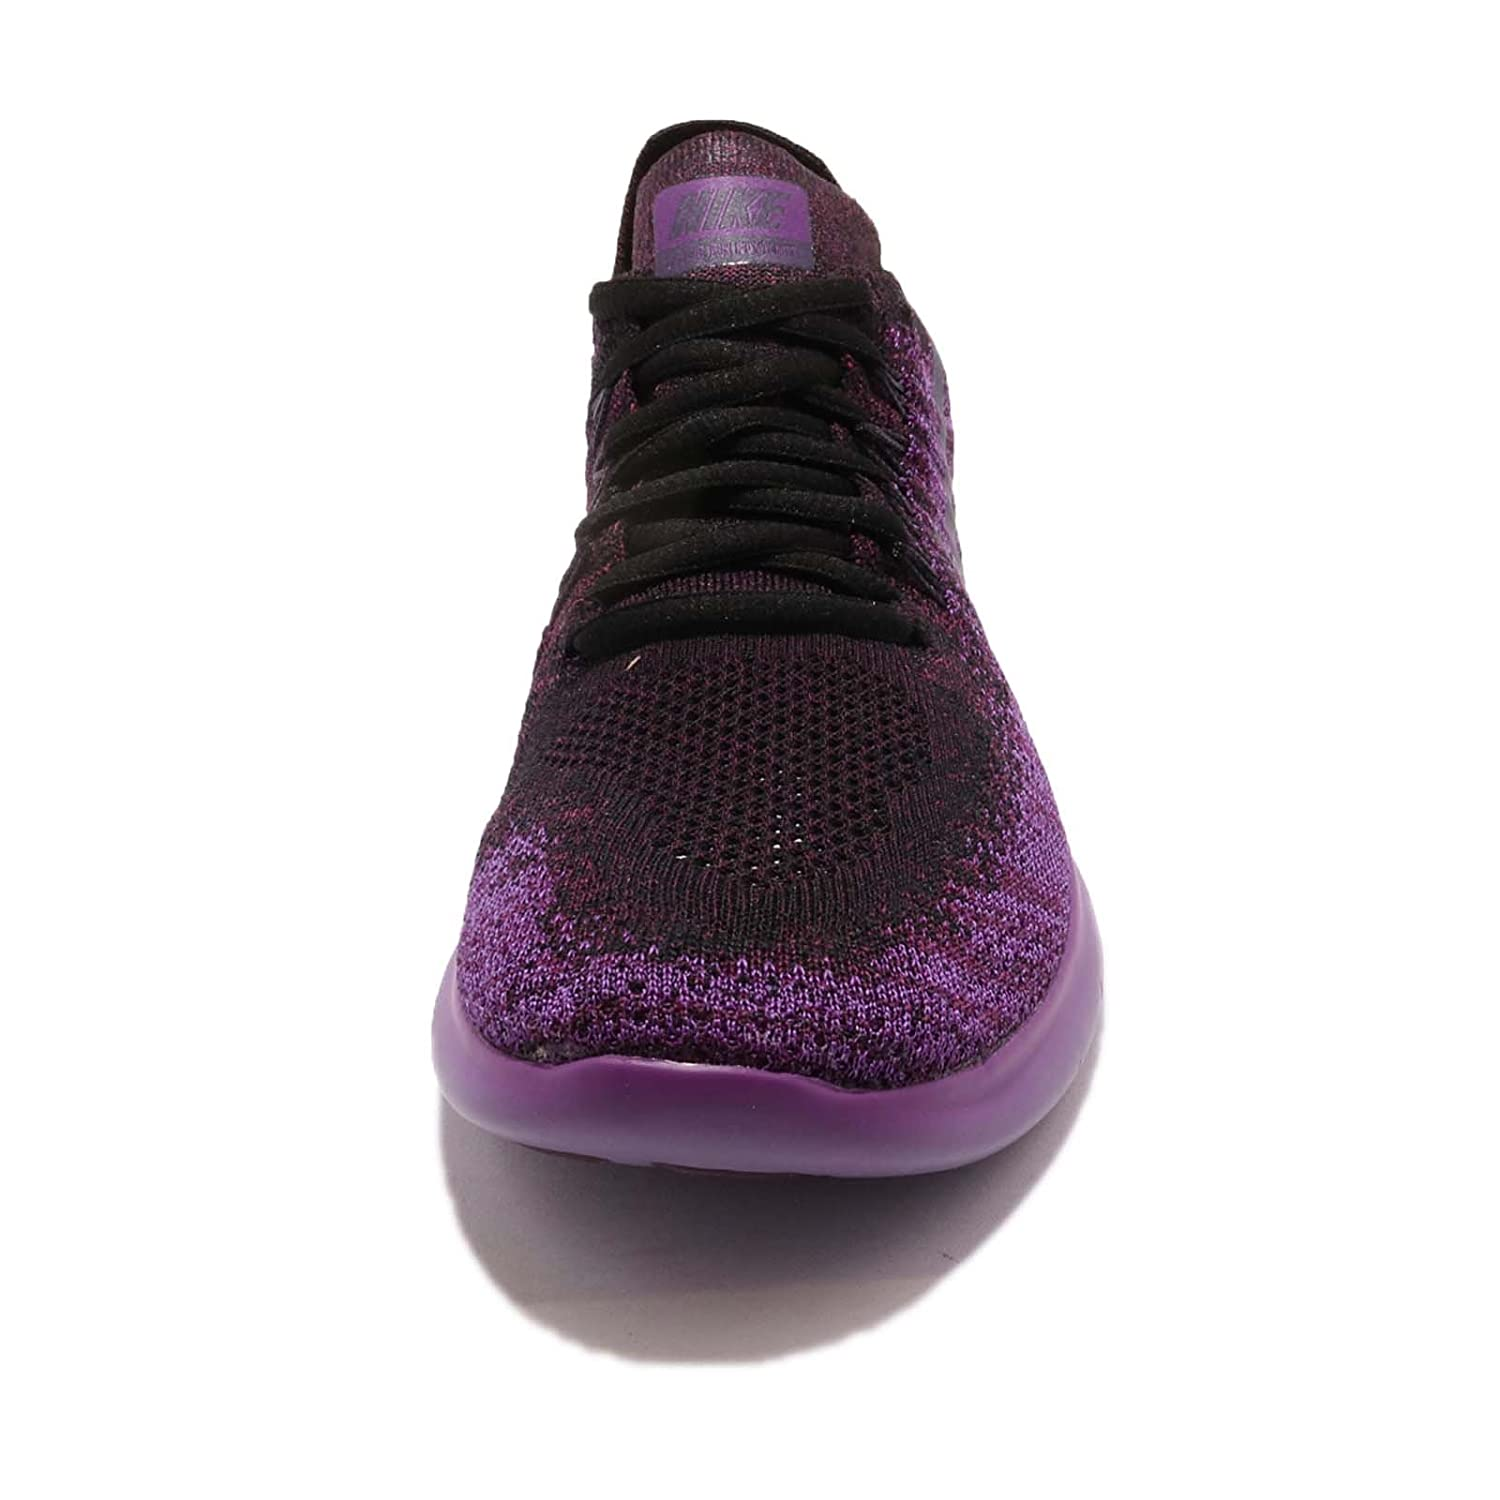 NIKE Women's Free RN Flyknit 2017 Running Shoe B076V27PNN 6 B(M) US|Black/Dark Raisin-deadly Pink